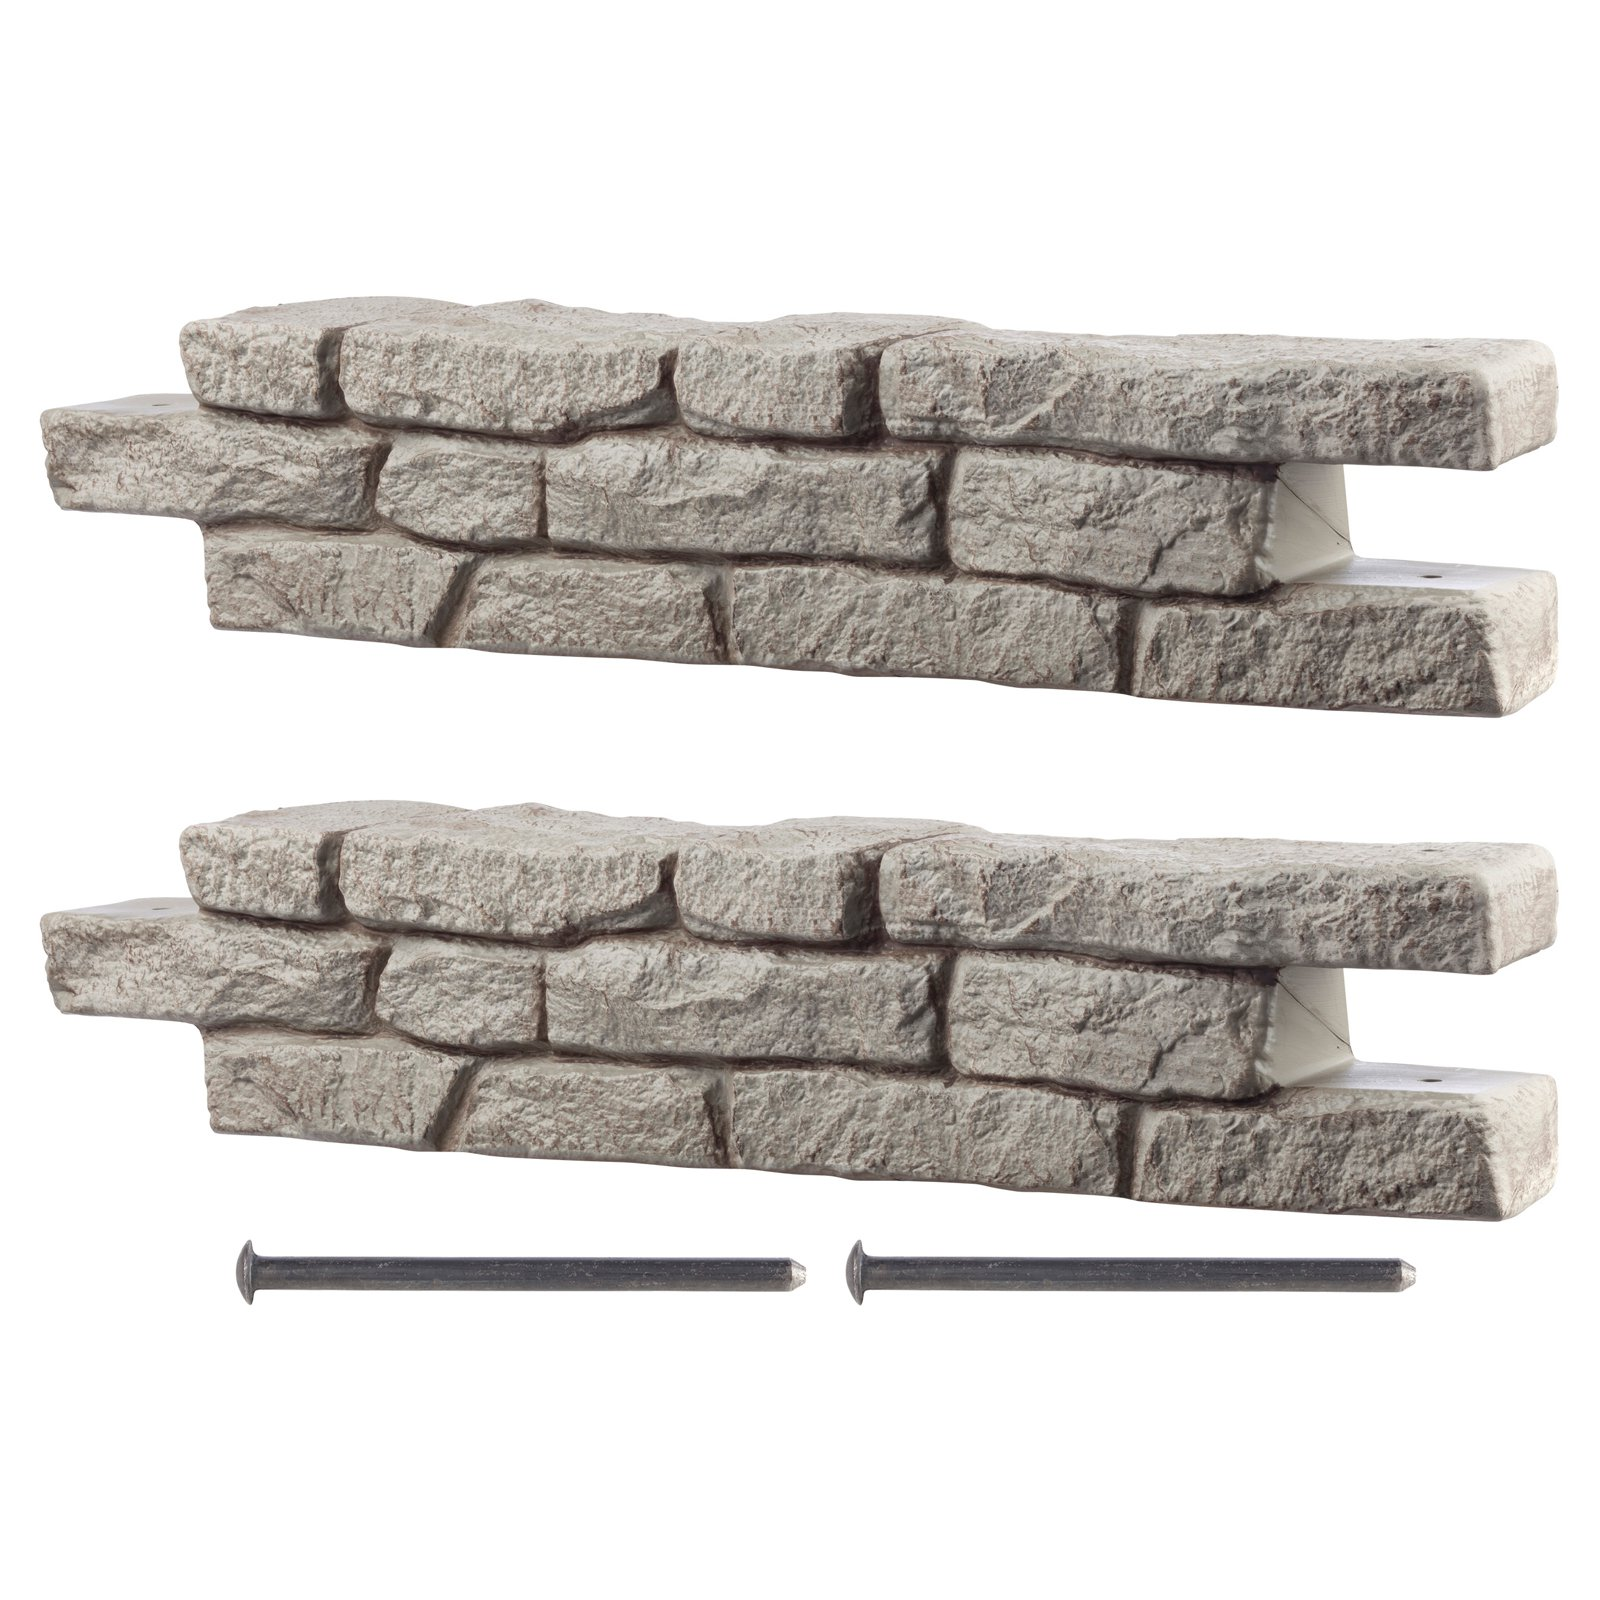 RTS Home Accents Straight Rock Lock Residential Landscaping - Set of 2